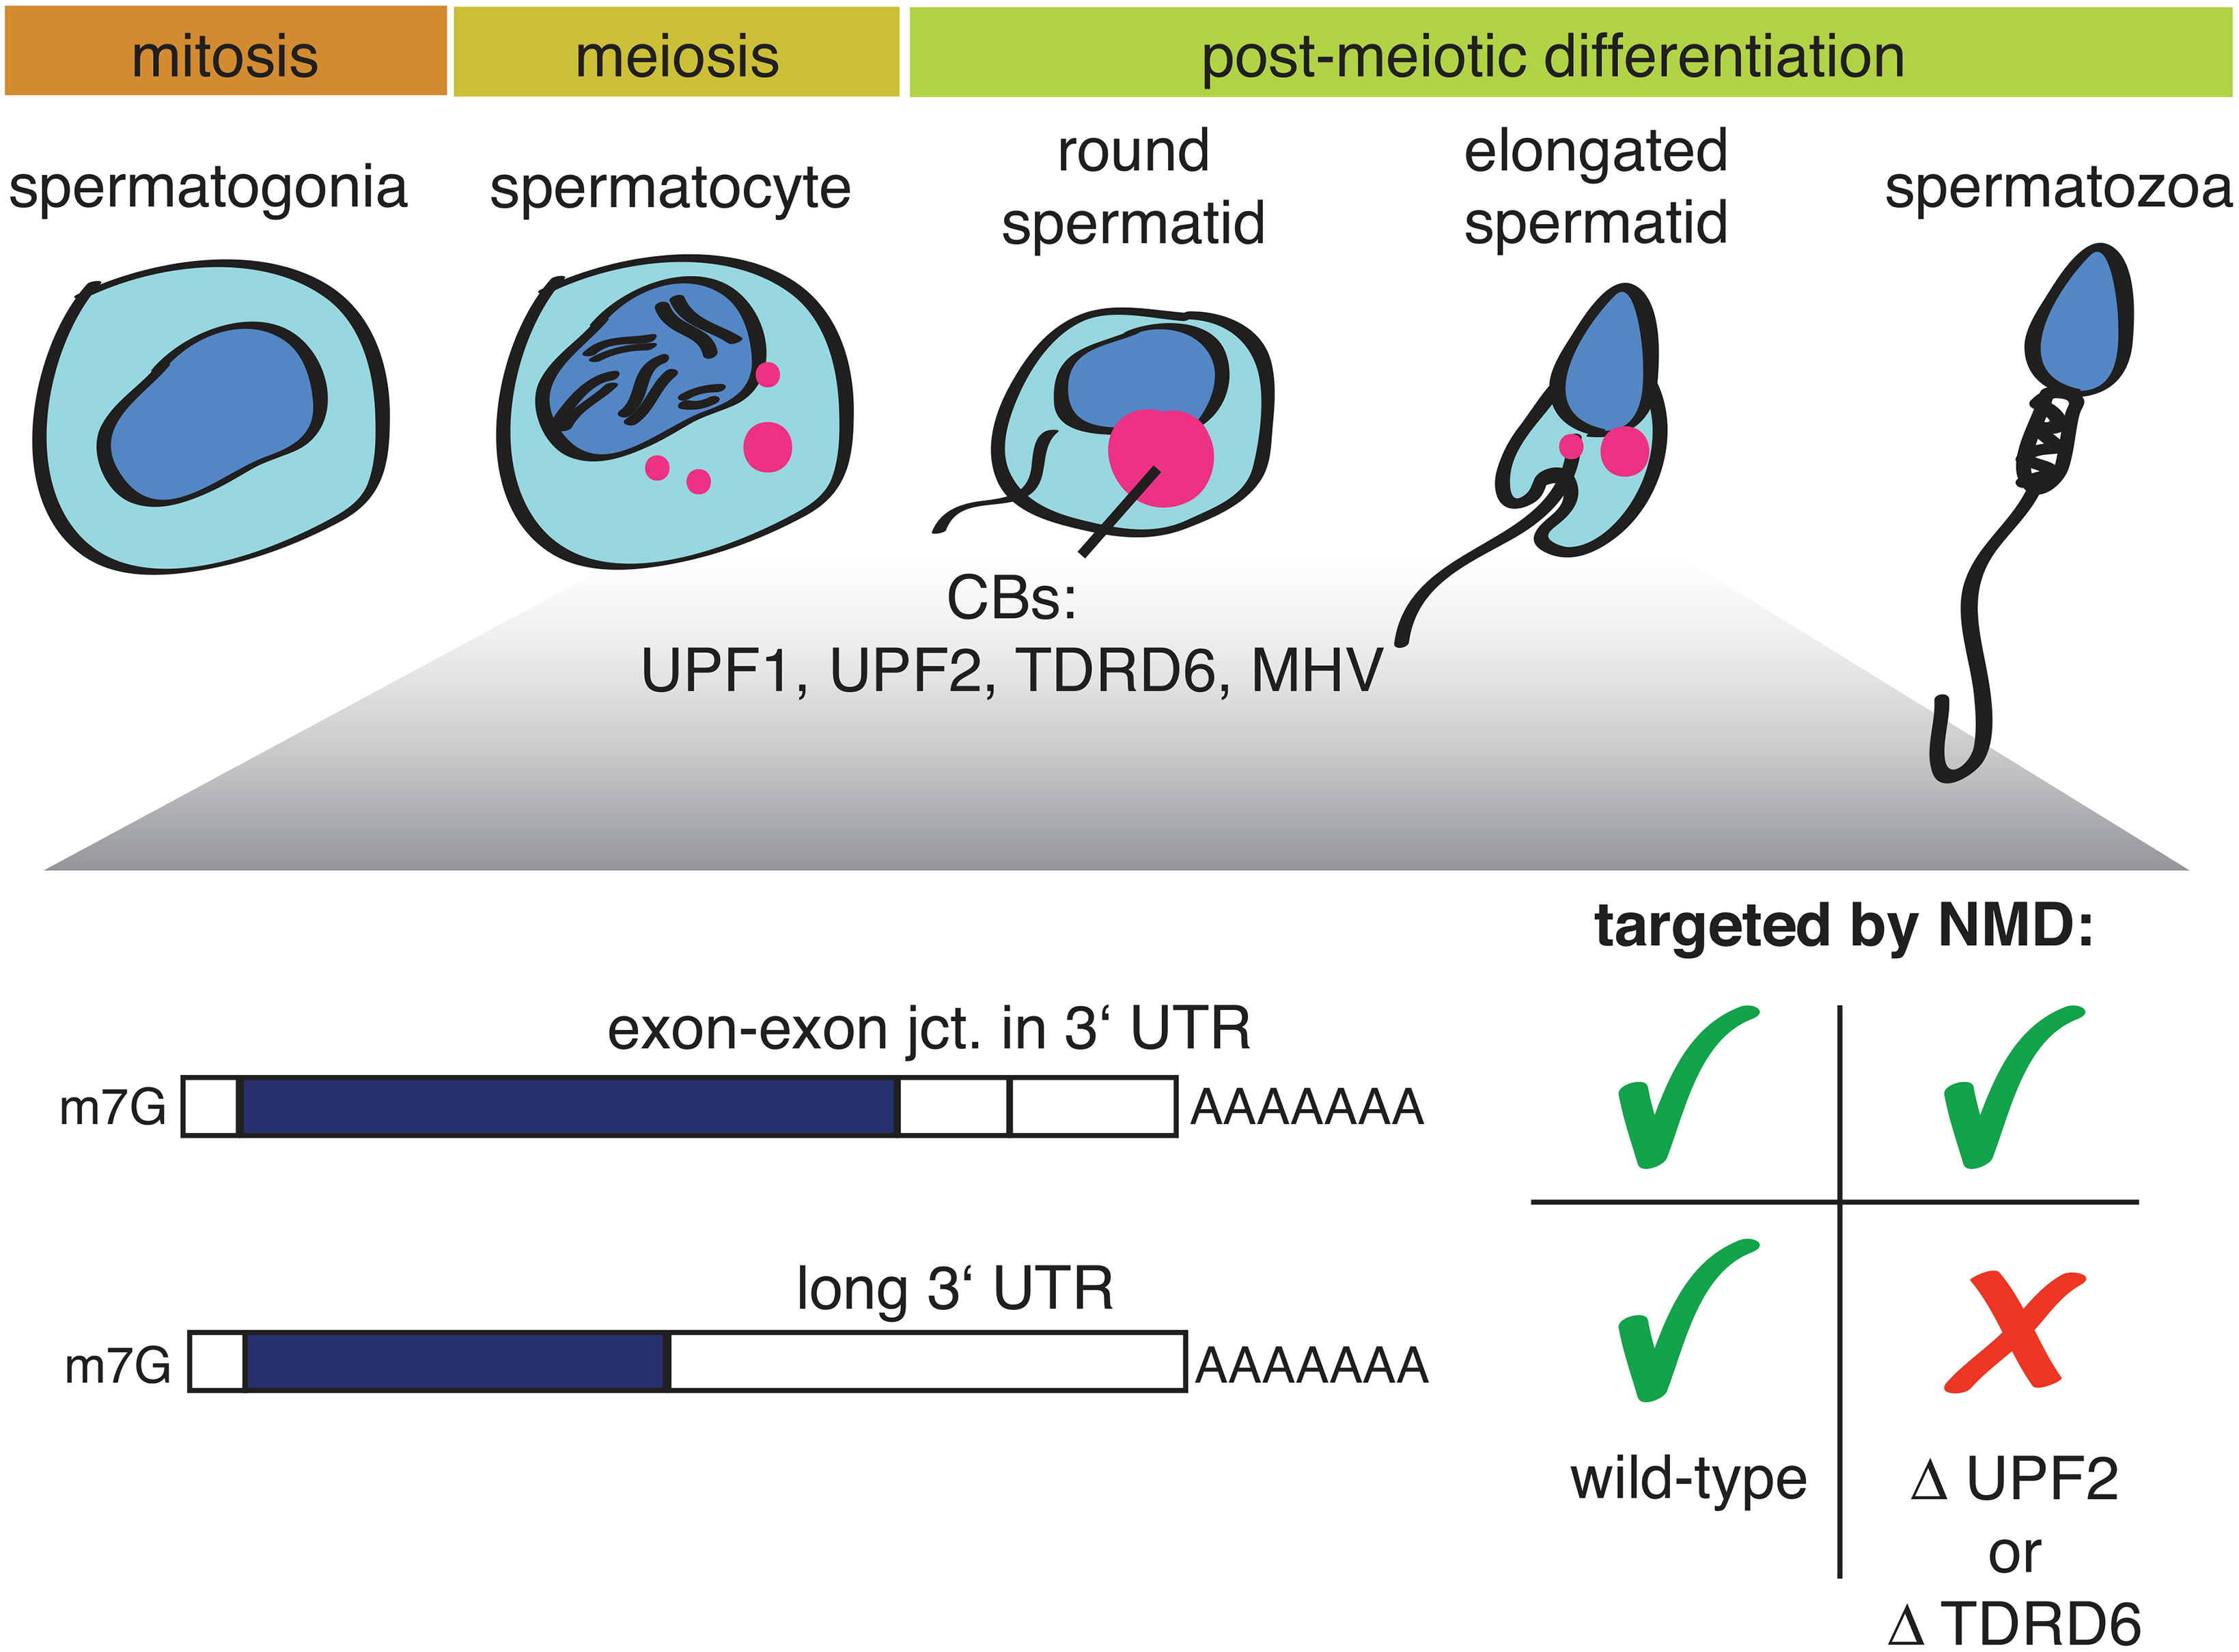 Illustration depicting mammalian spermatogenesis and the effect of a UPF2 or TDRD6 knockout on two different types of NMD-targeted mRNAs.